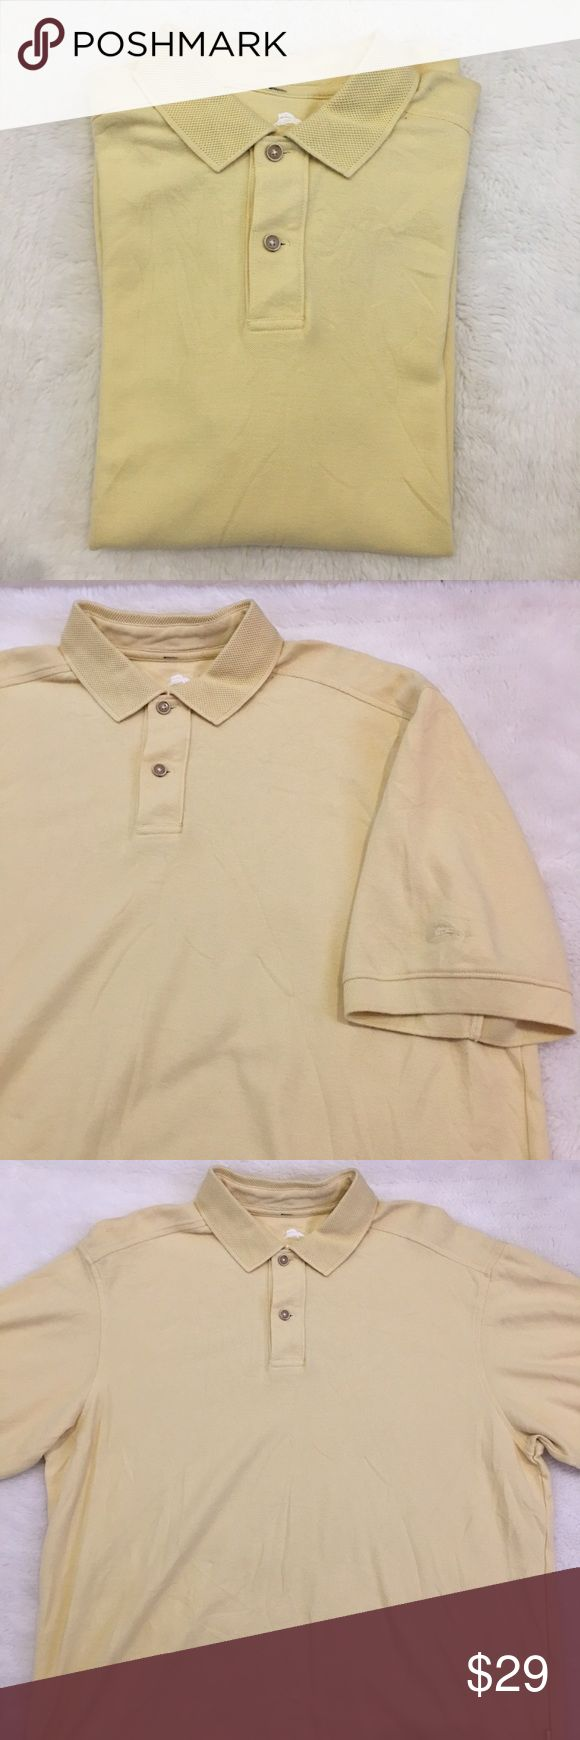 Tommy Bahama Yellow Polo Shirt Size Large Preowned authentic Tommy Bahama Yellow Polo Shirt Size Large. Lightly worn. Please look at pictures for better reference. Happy shopping! T6 Tommy Bahama Shirts Polos